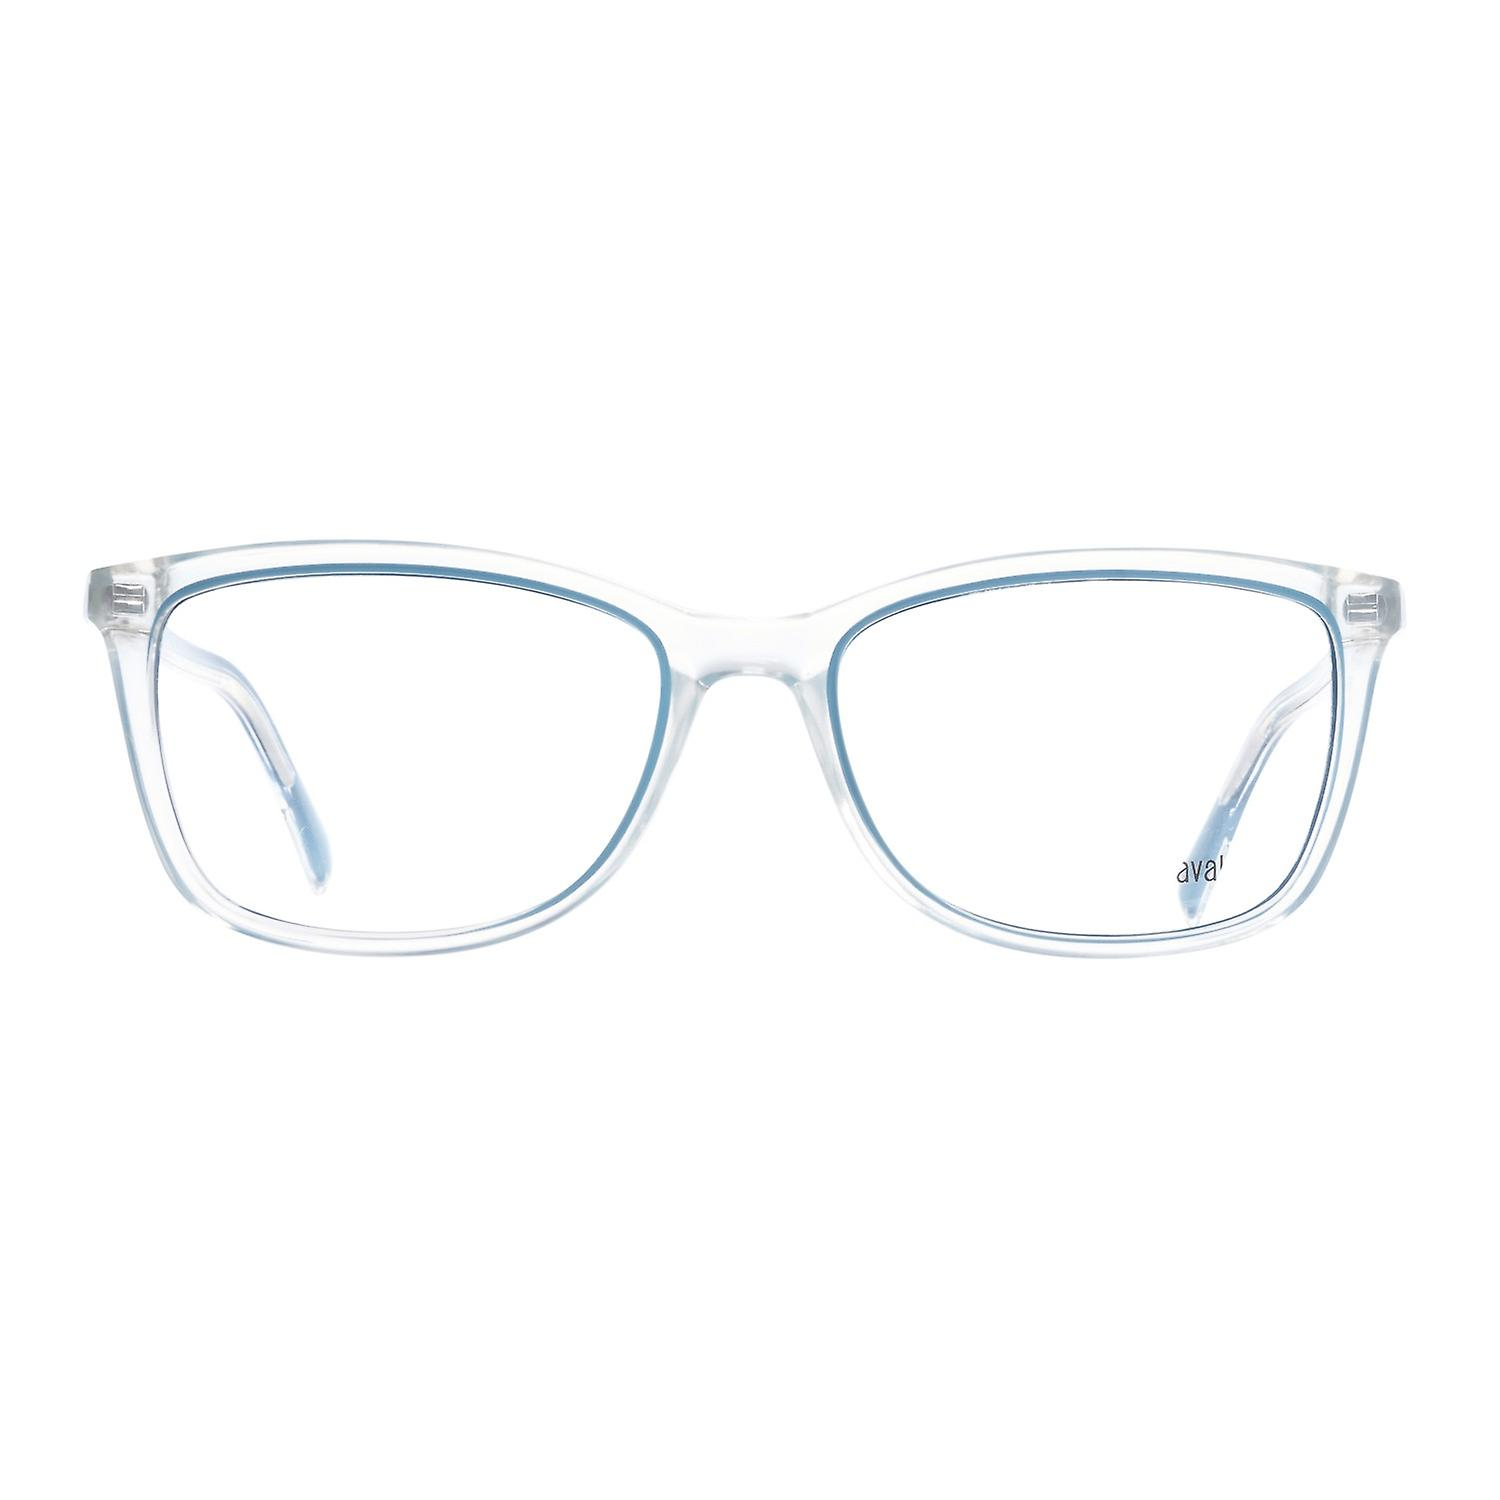 Just Cavalli Brille Transparent | Fruugo